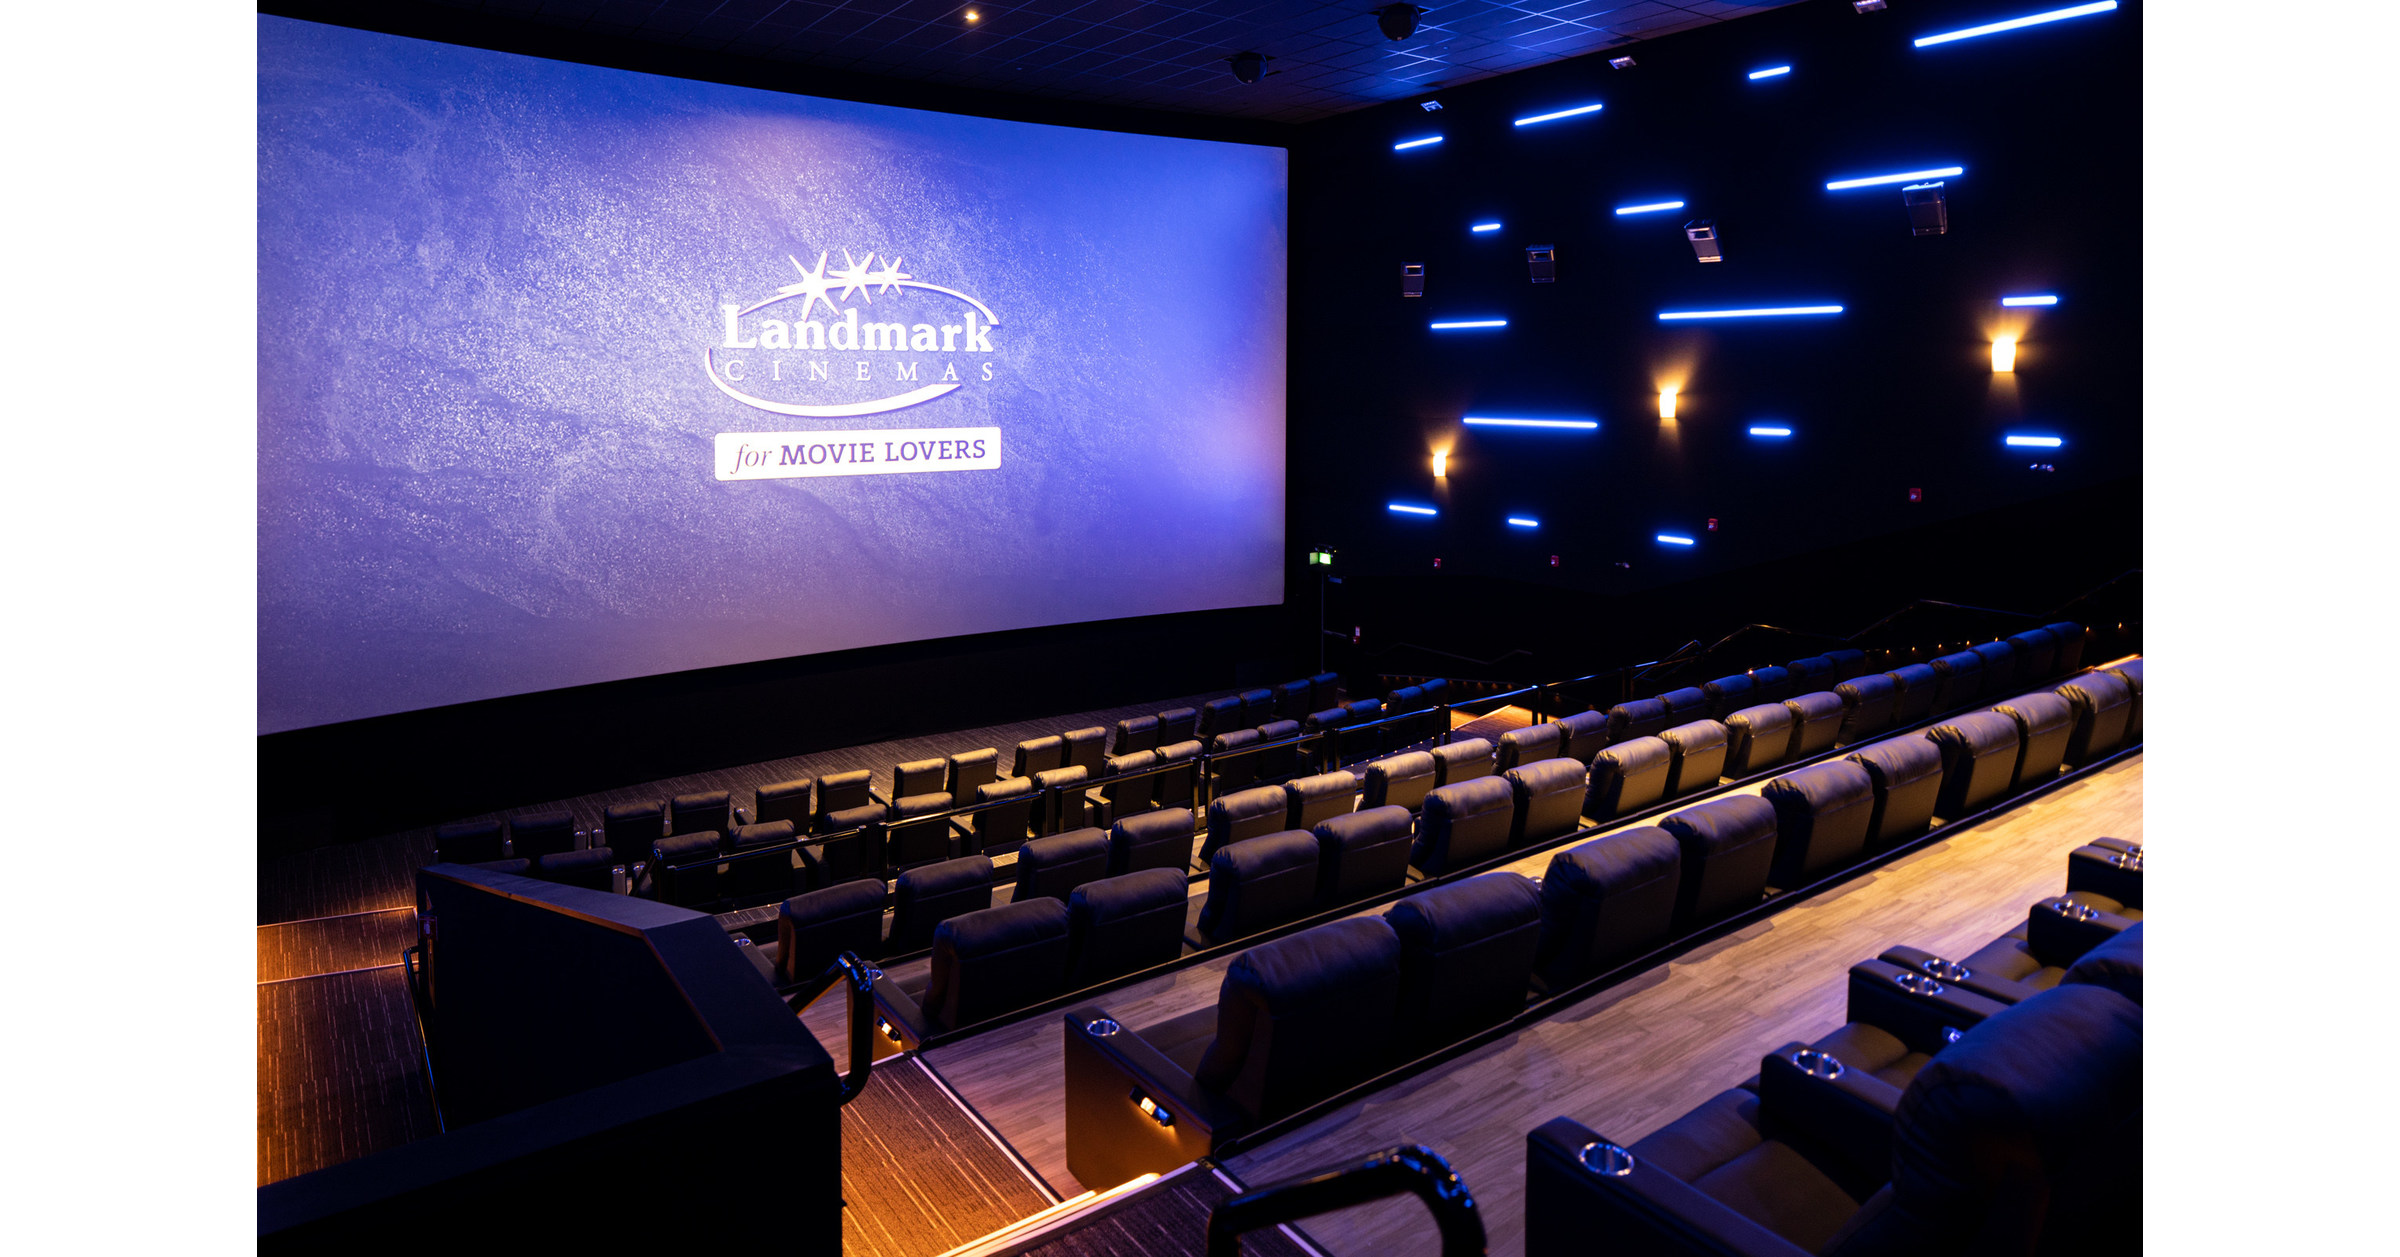 Now Open Landmark Cinemas At Cf Market Mall Featuring Luxury Recliner Seating And Laser Projection